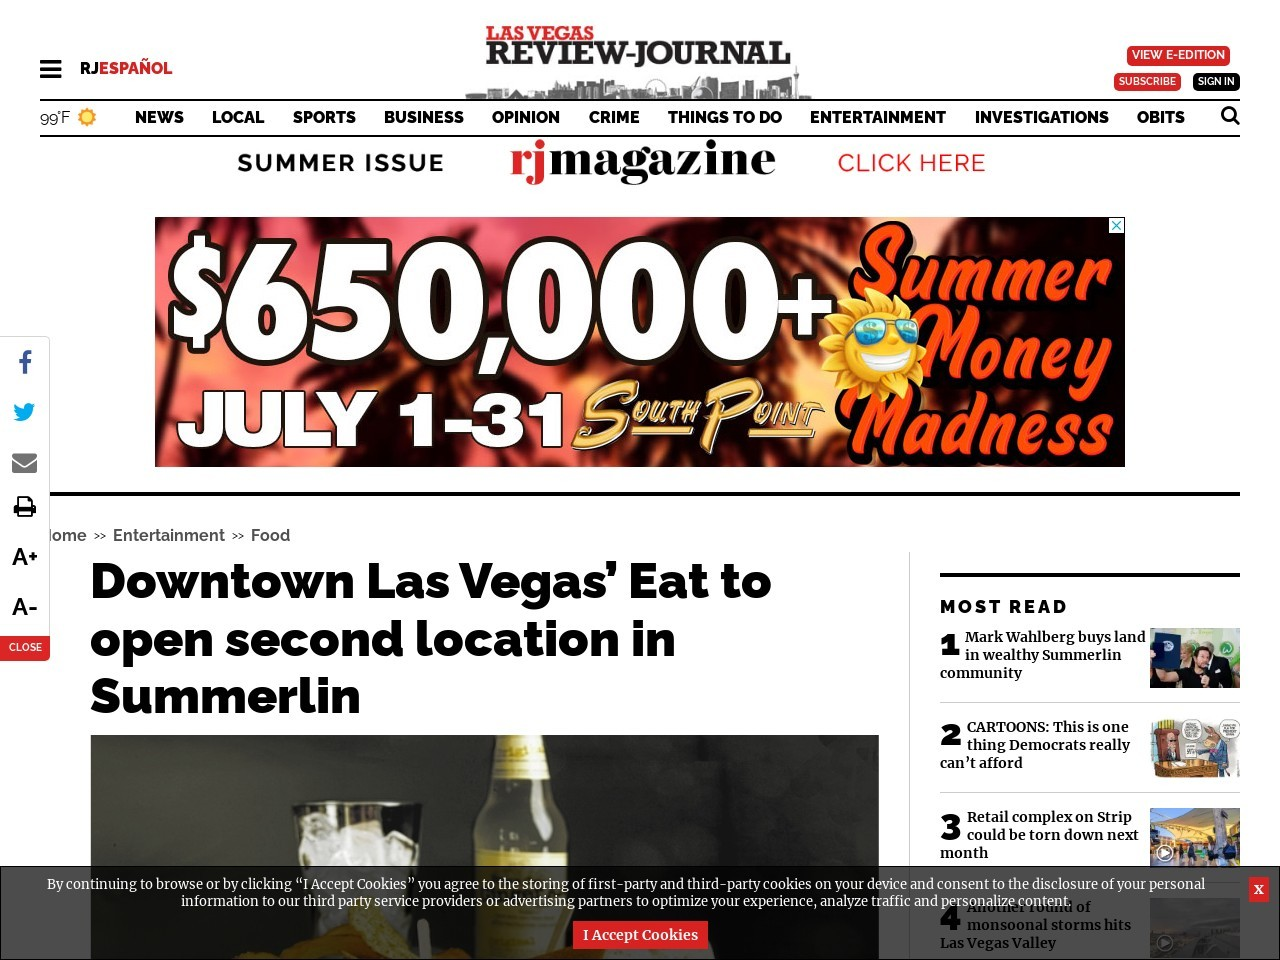 Downtown Las Vegas' Eat to open second location in Summerlin